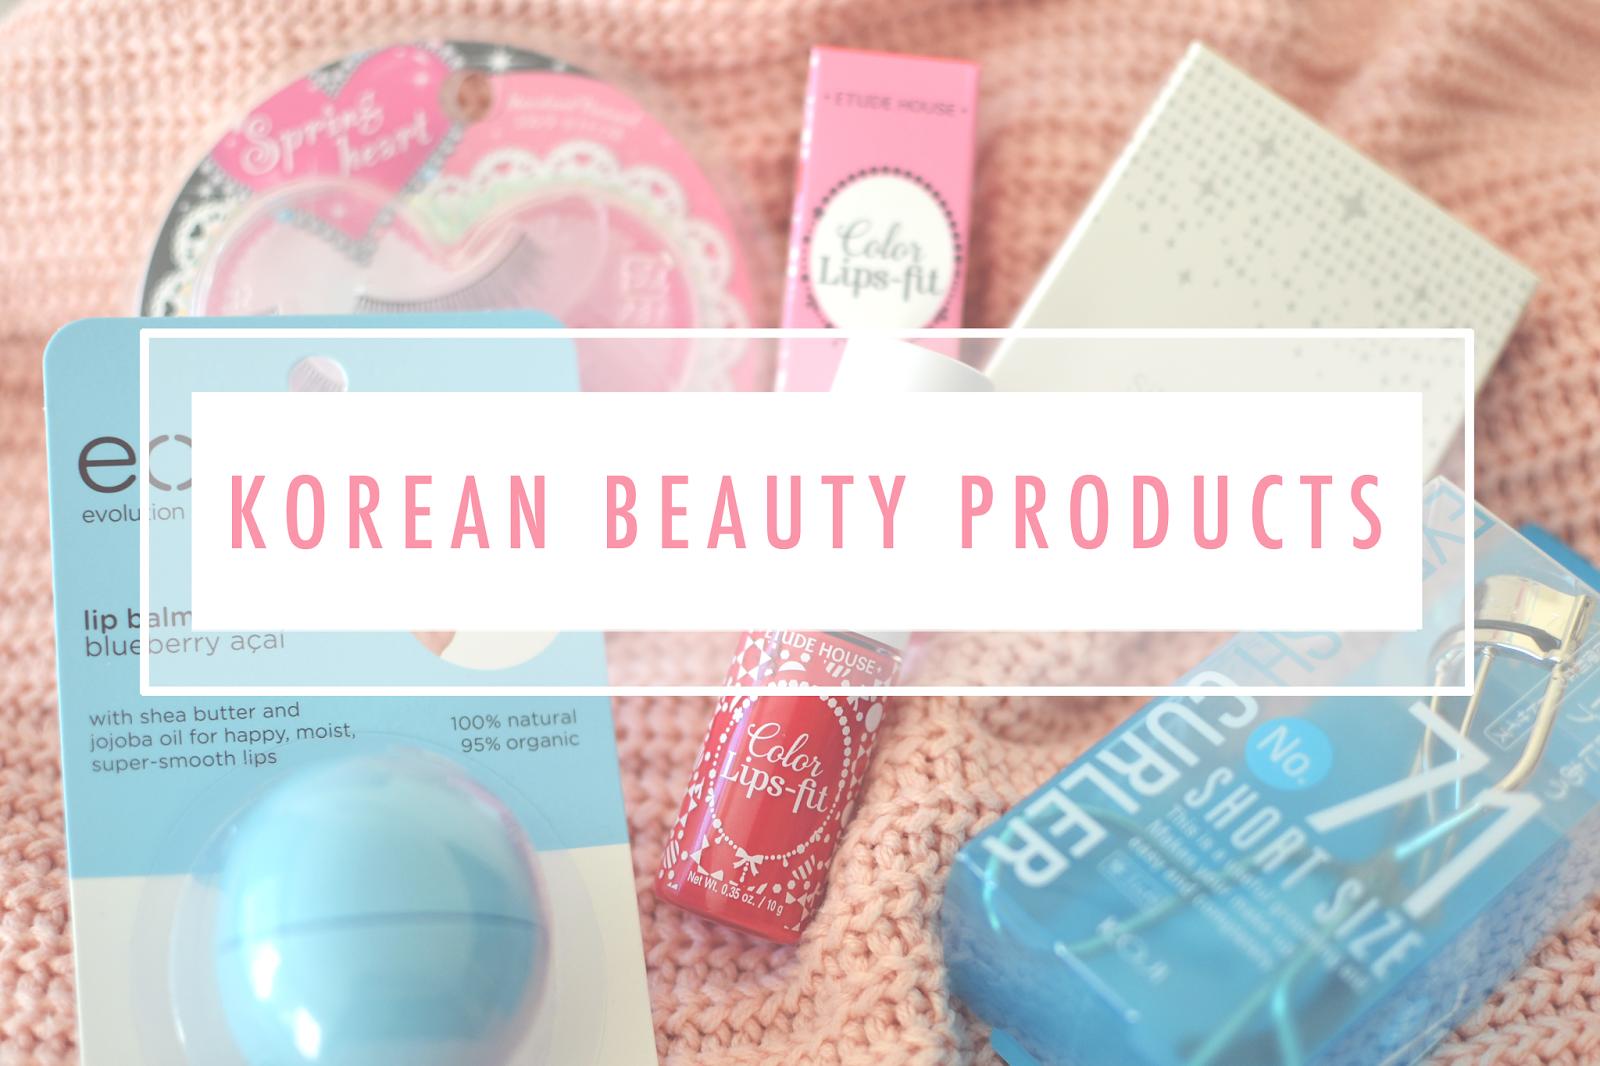 korean beauty products, korean make up, asian beauty products